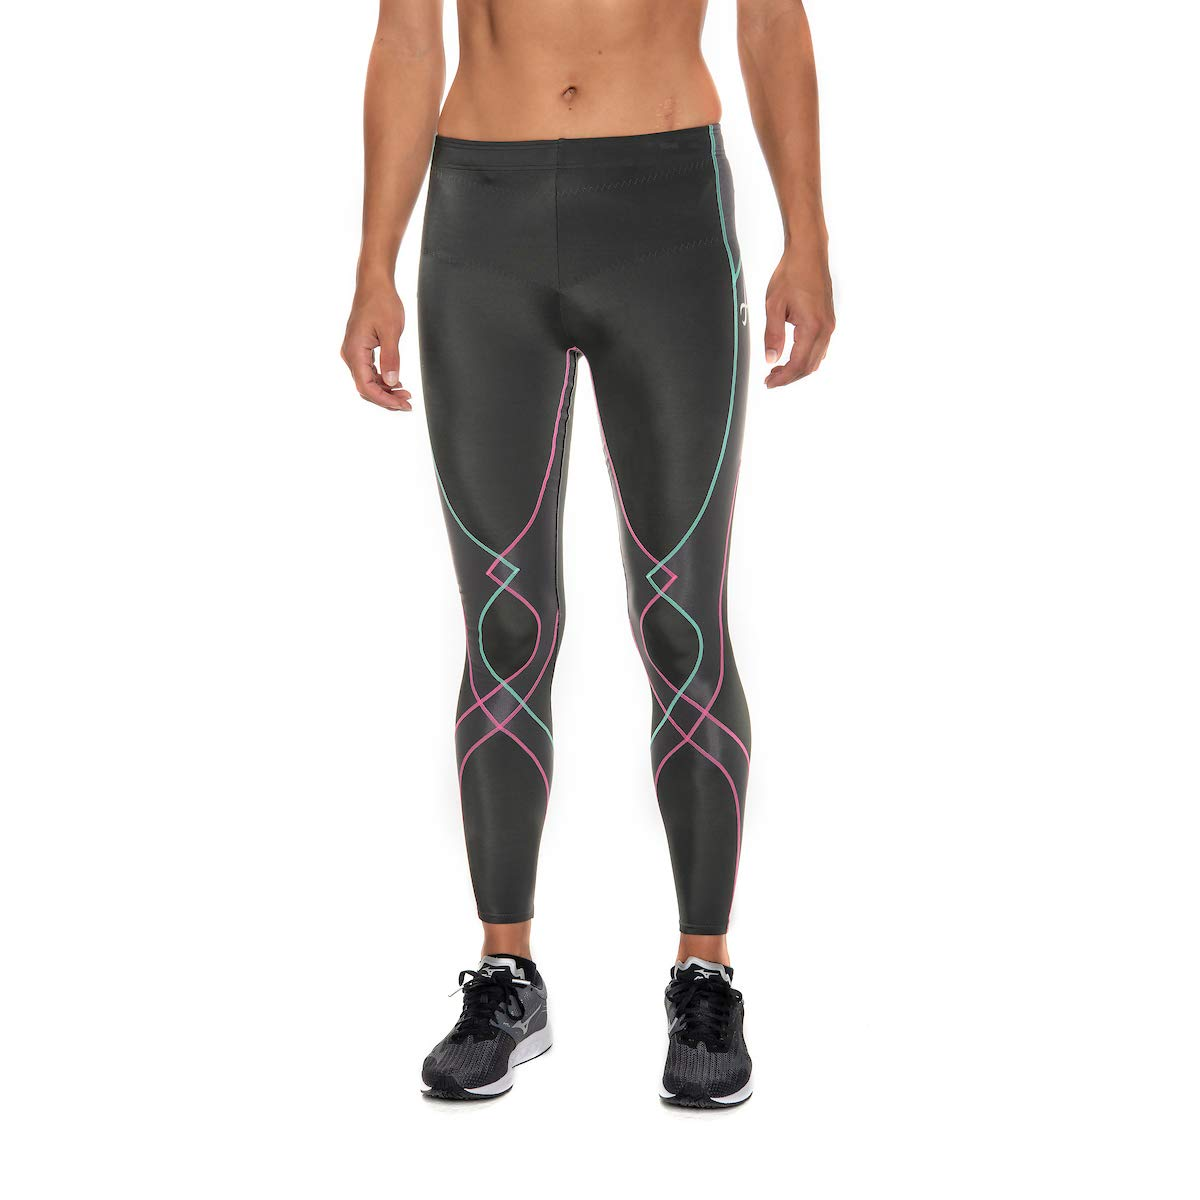 CW-X Women's Stabilyx Joint Support Compression Tight, Grey/Pink/Turquoise, Small by CW-X